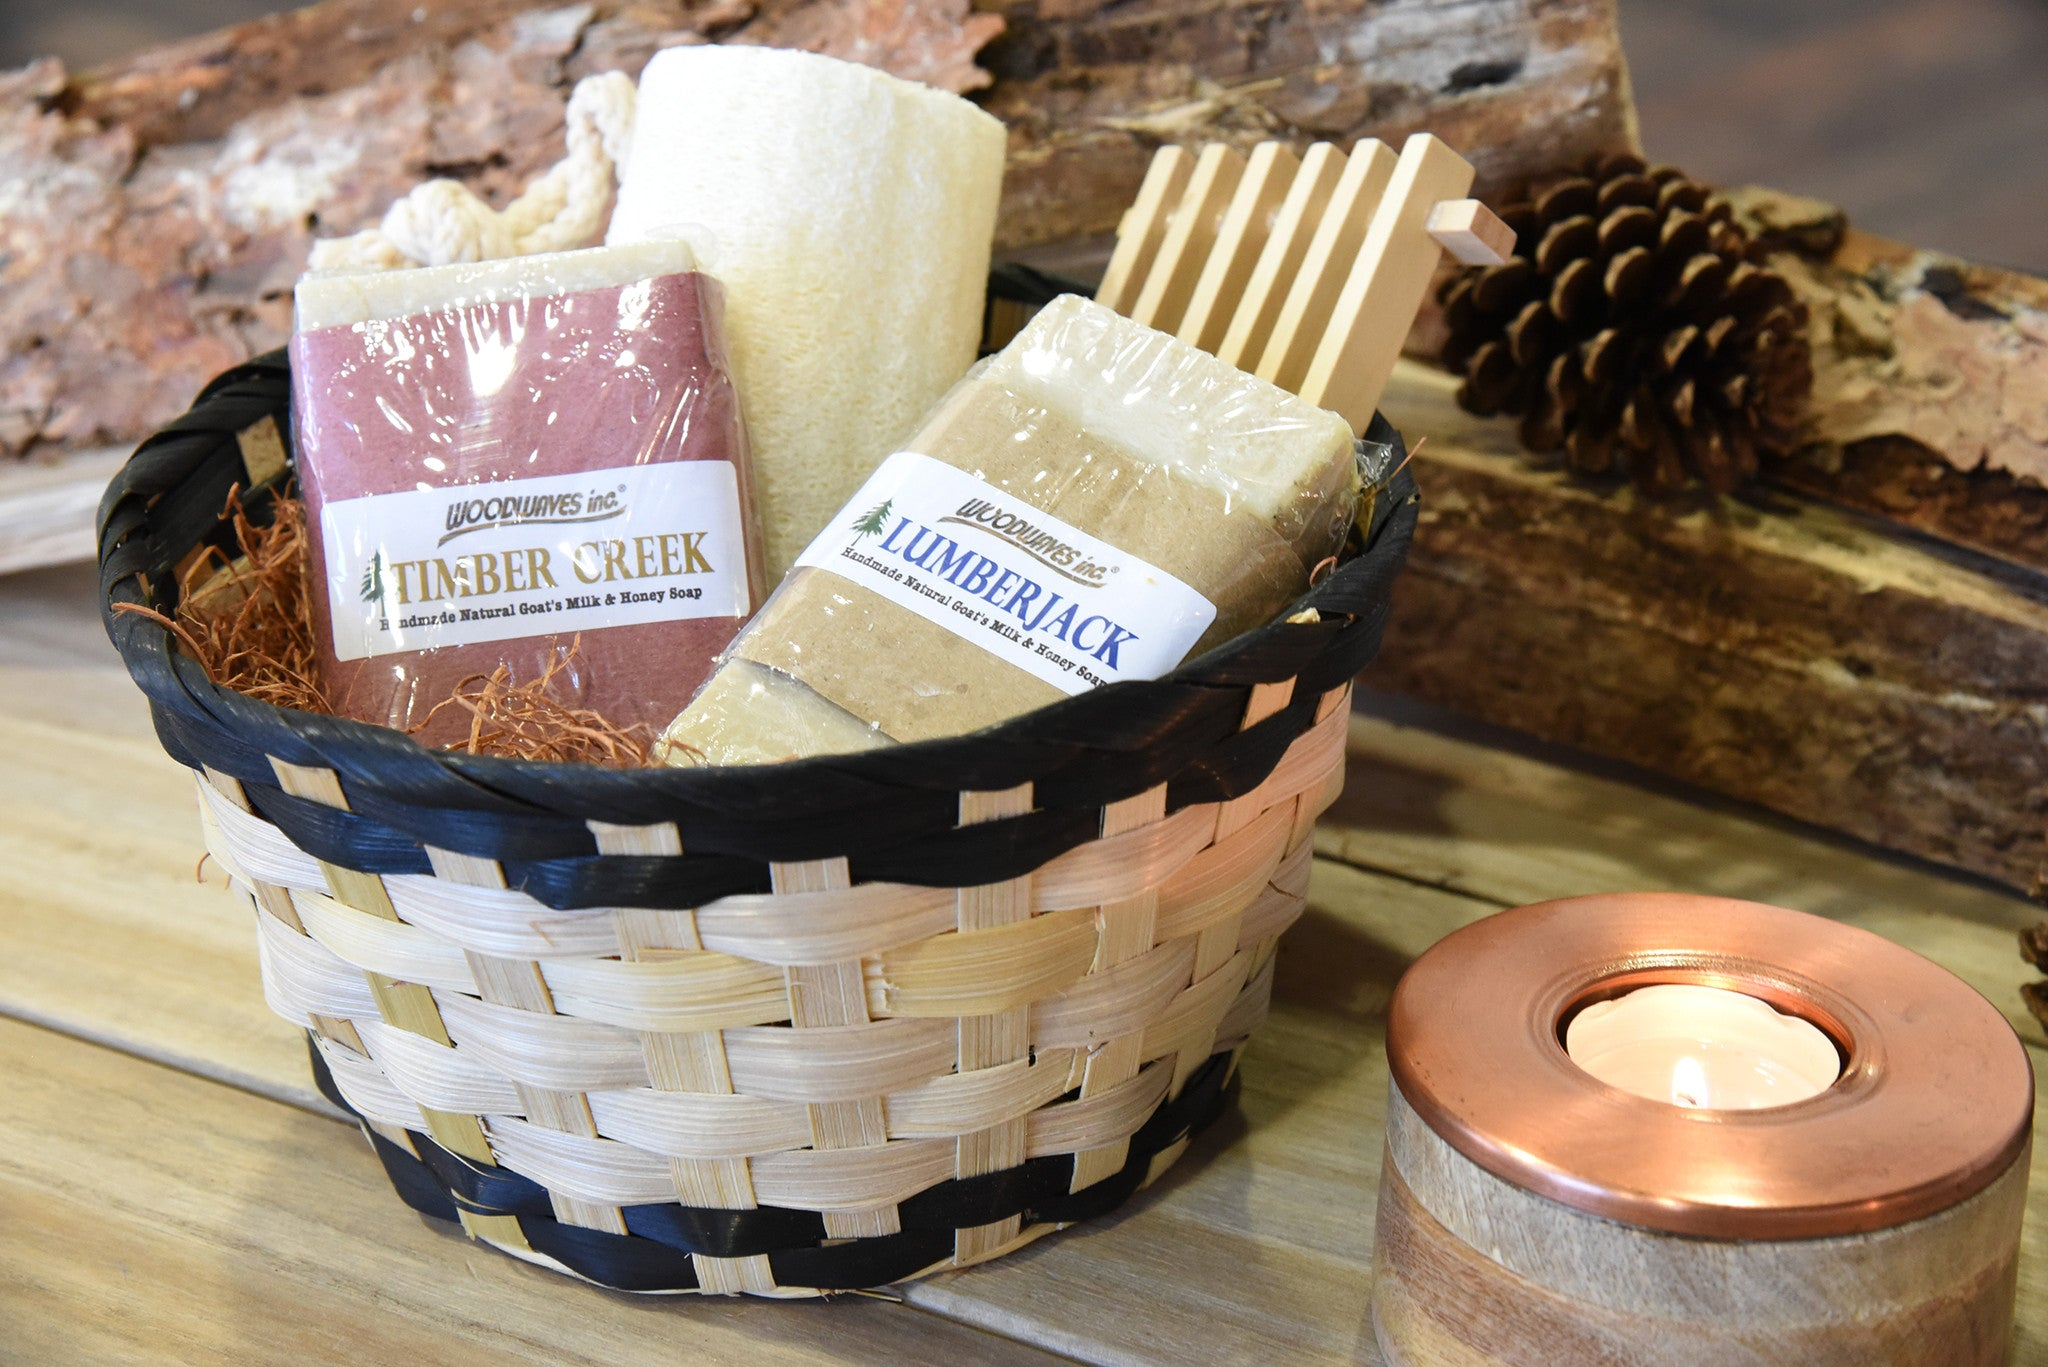 Handmade Men's Spa Gift Basket Bath Set - Goat's Milk Soap Bars - Lumberjack and Timber Creek